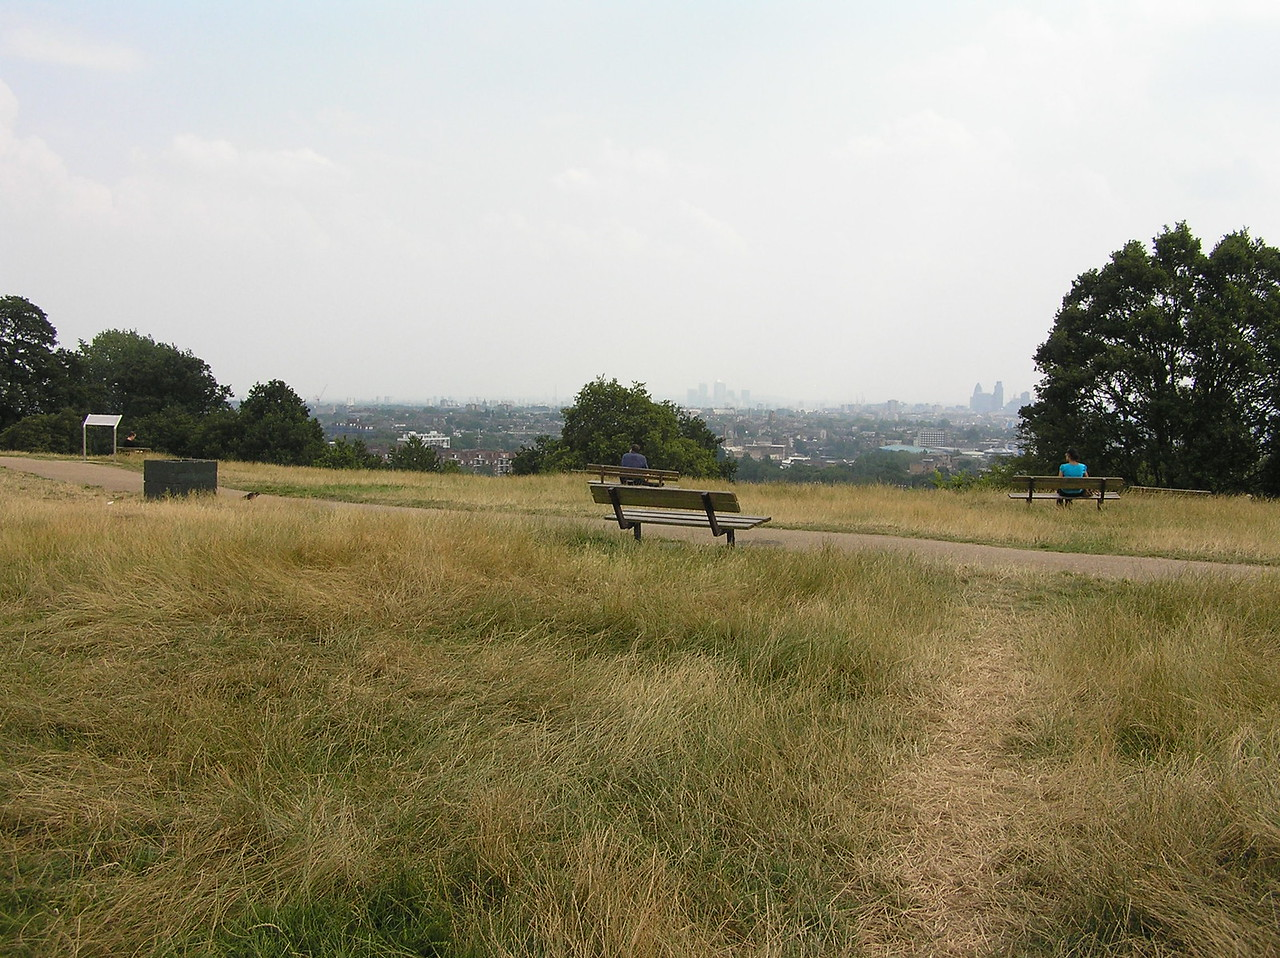 The were several benches at the top of Parliament Hill, each with a dedication engraved upon it. As one of the highest points in London, it offers a nice view of the city below.